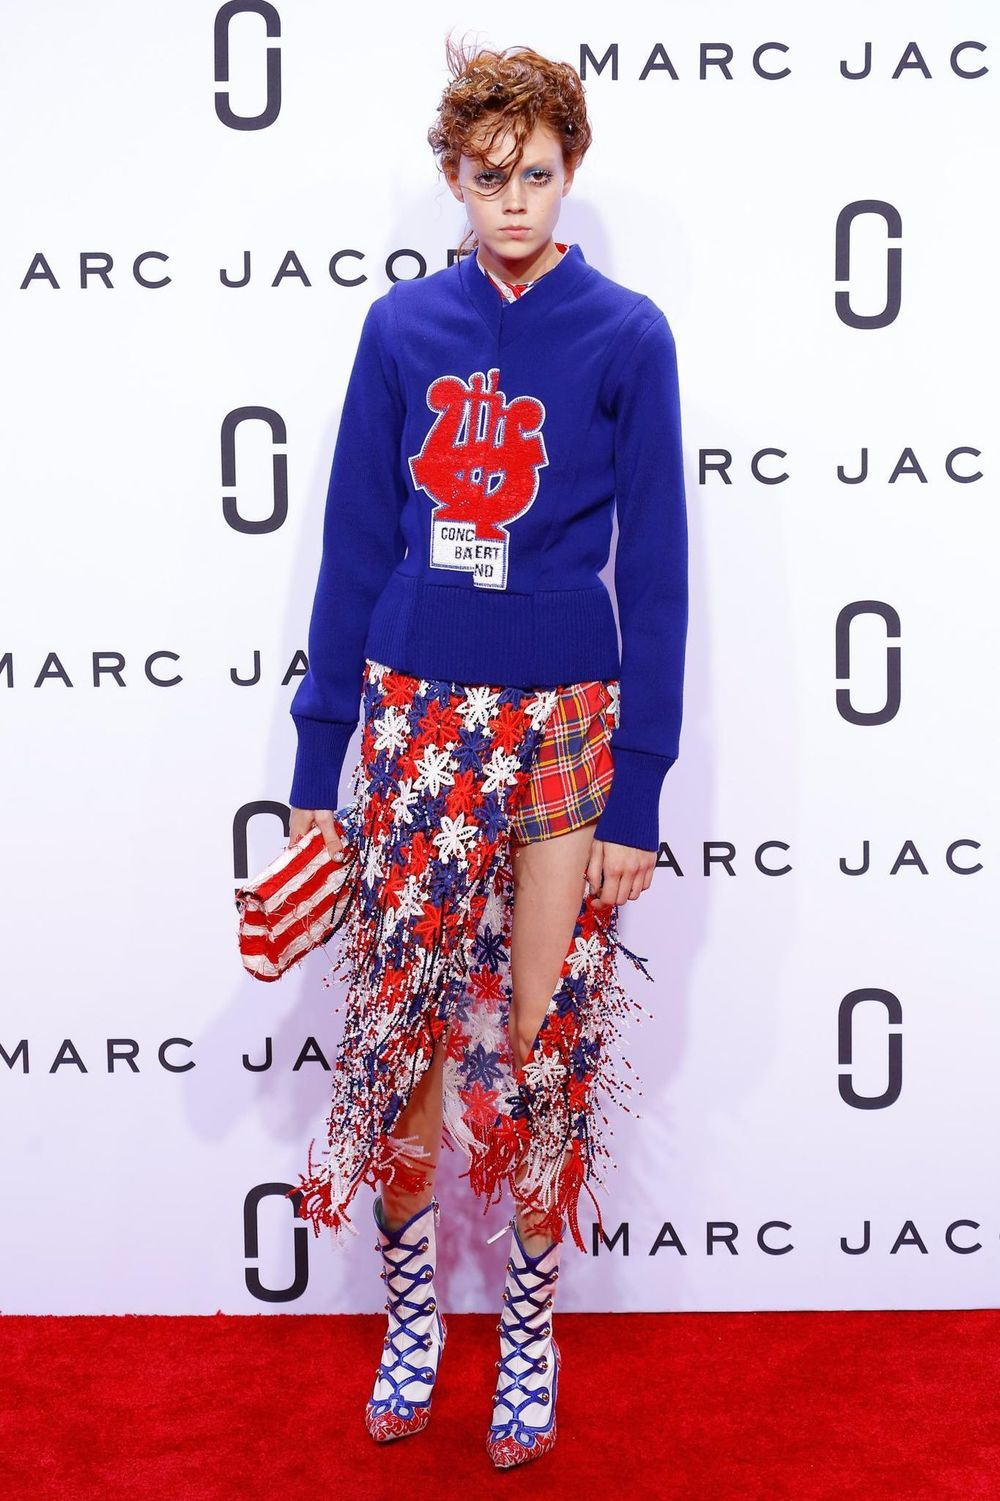 Model Natalie Westling poses on the Marc Jacobs red carpet before strutting down the runway; image via